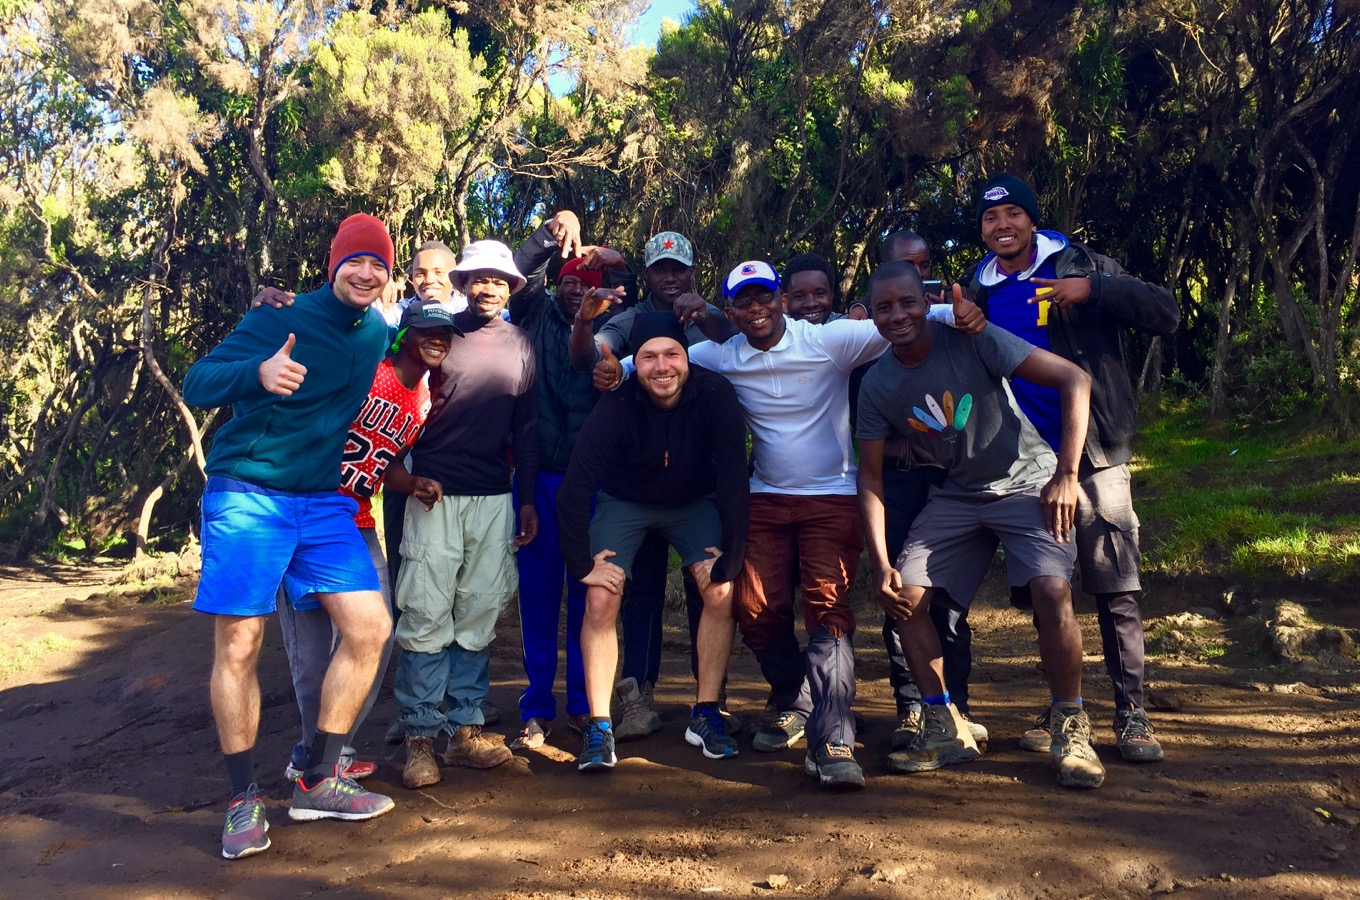 Group photo with our team on Kilimanjaro